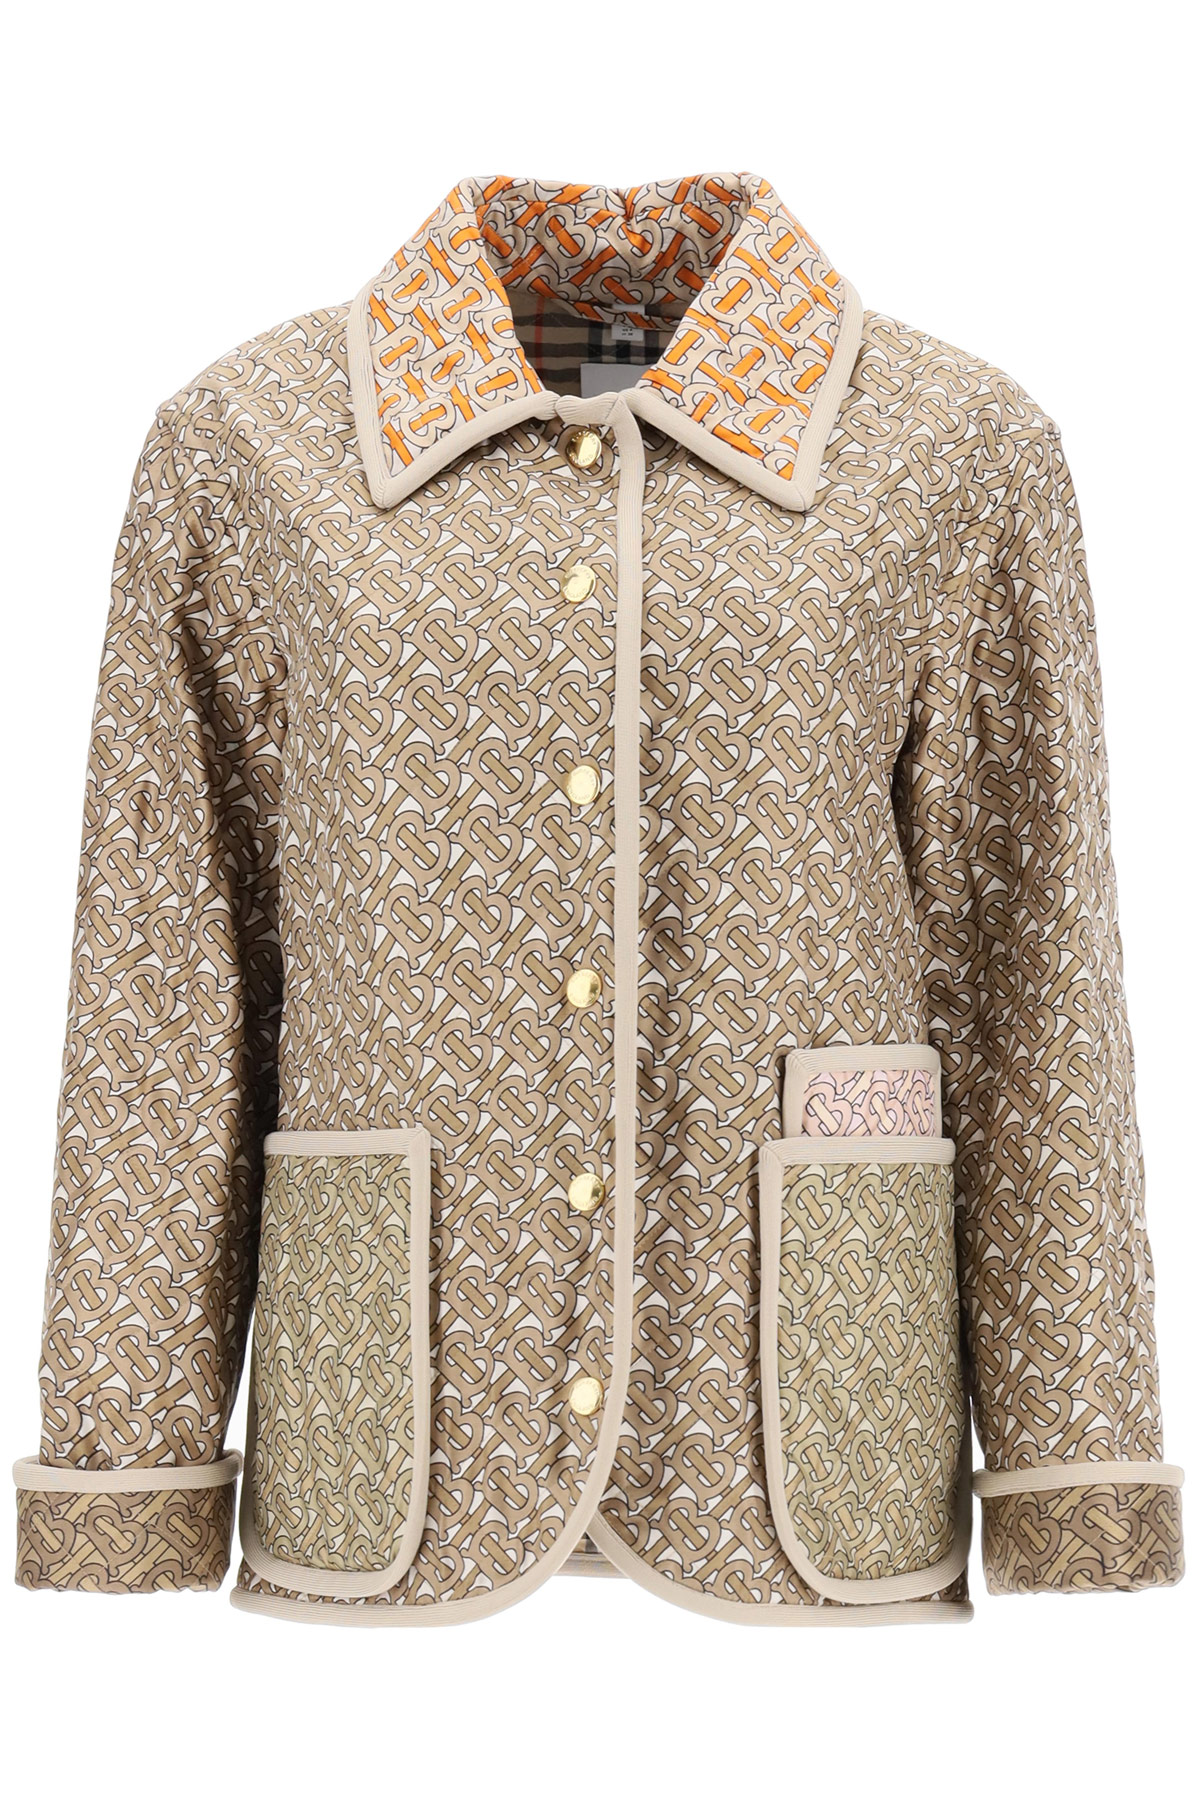 BURBERRY QUILTED MONOGRAM JACKET 6 Beige, Brown, Orange Silk